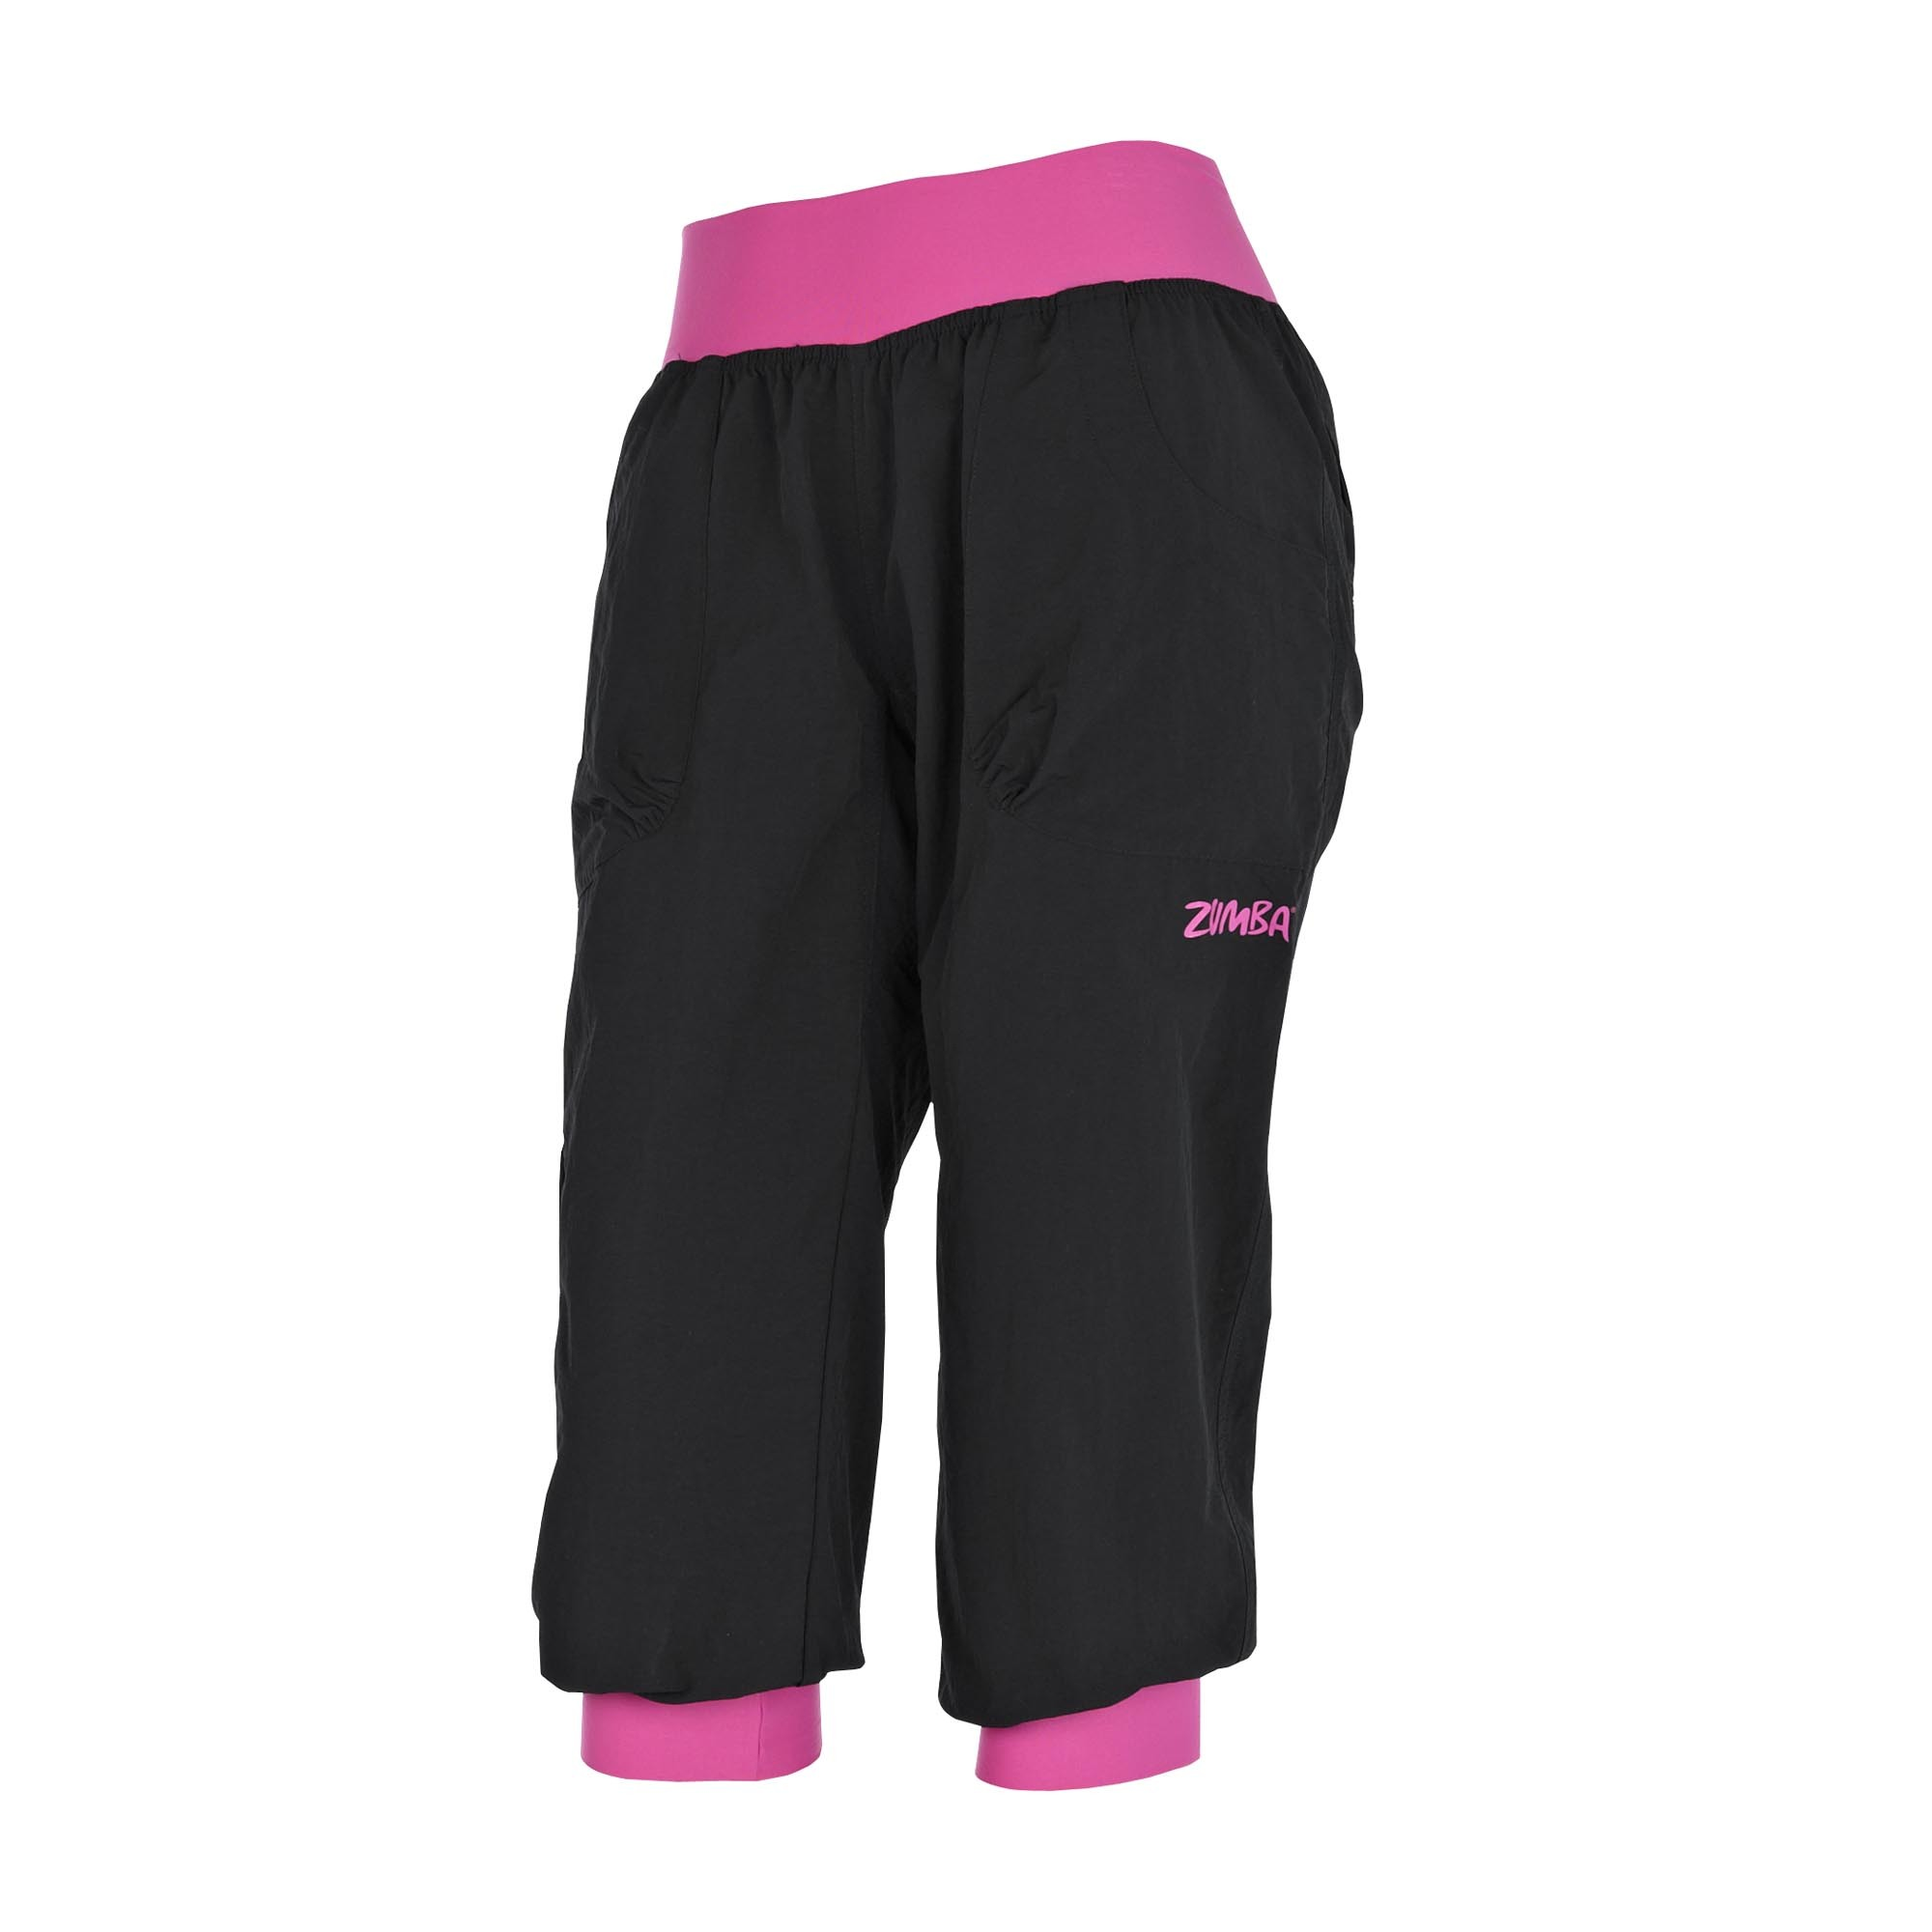 Clothing stores online Zumba clothing store